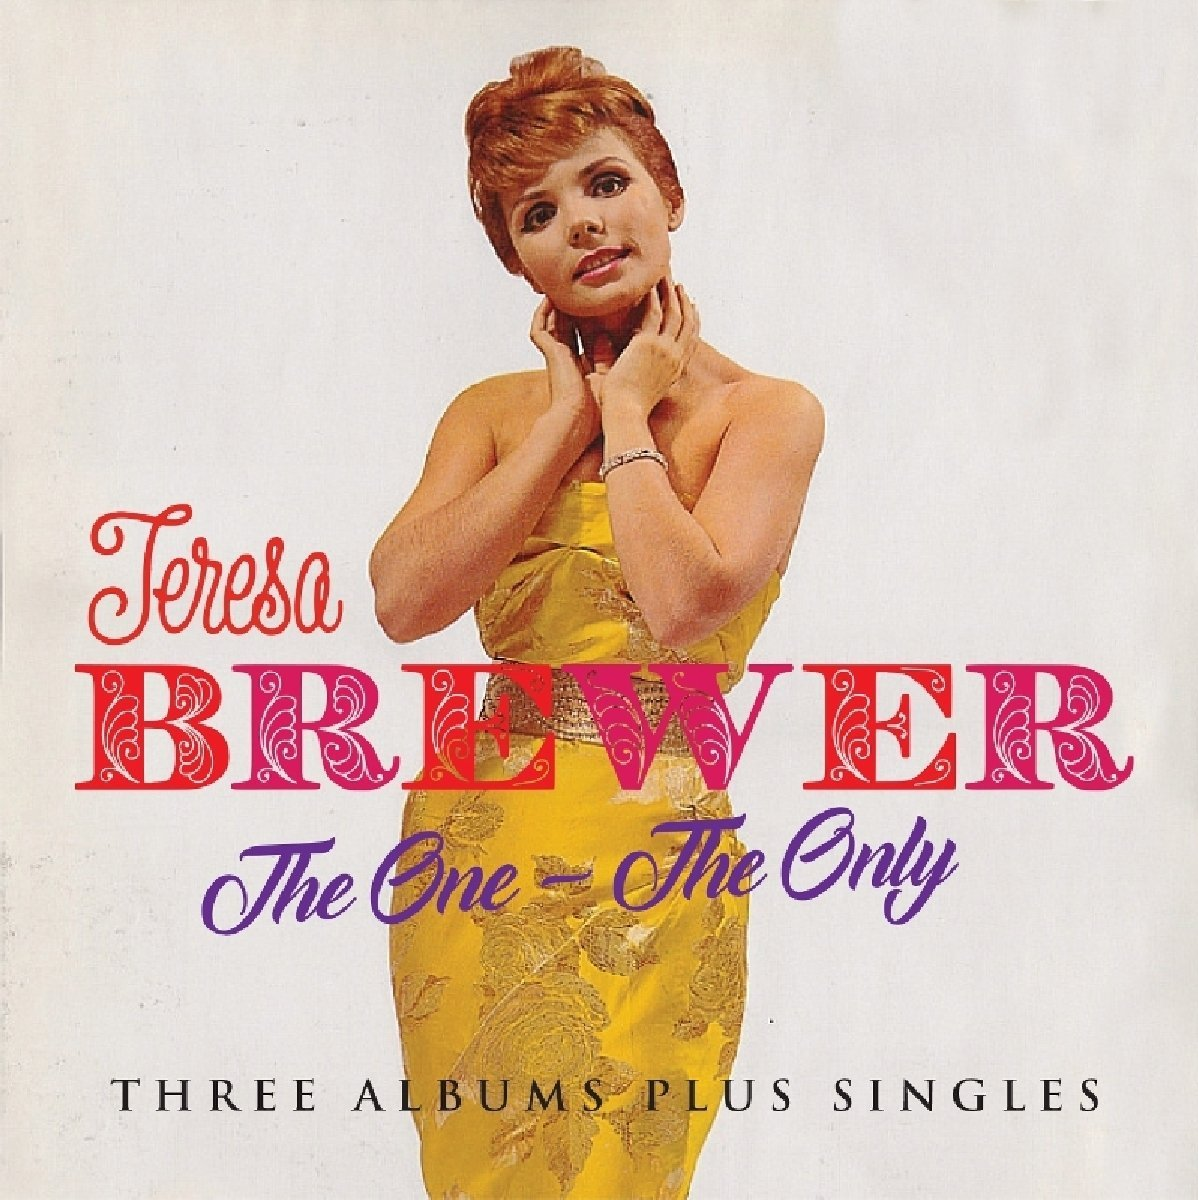 TERESA BREWER - The One the Only cover